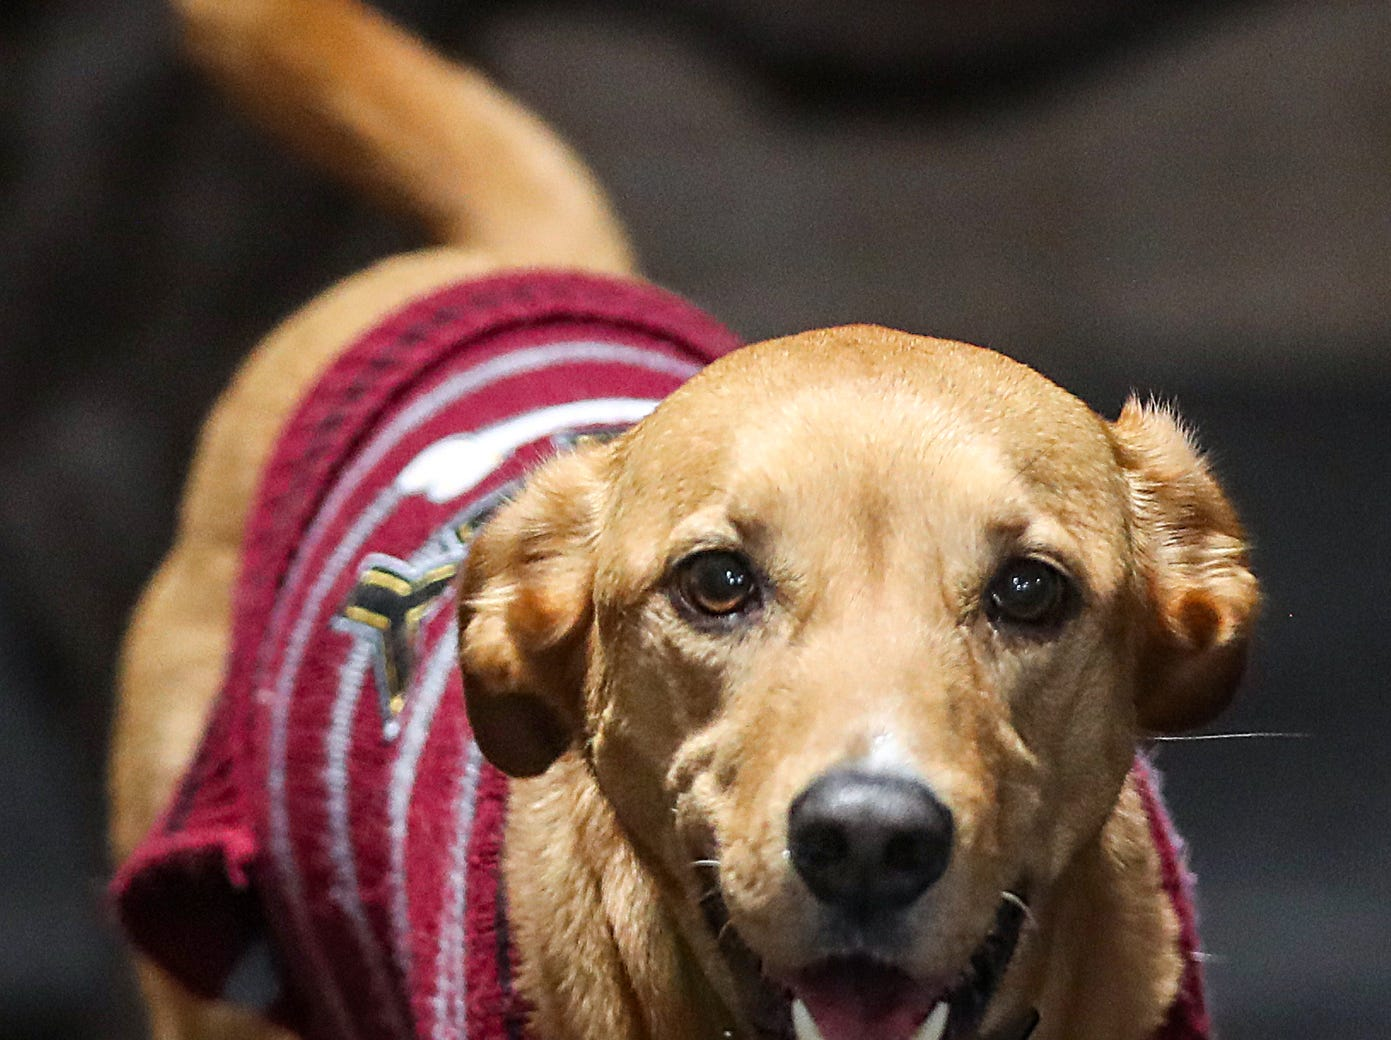 A dog named Layla seen during the grand opening of Indy's Indoor Bark Park in Indianapolis, Saturday, Jan, 5, 2019. The large indoor space offers owners a place to exercise their dogs regardless of the weather. Membership options include single-day, multi-day and annual passes.